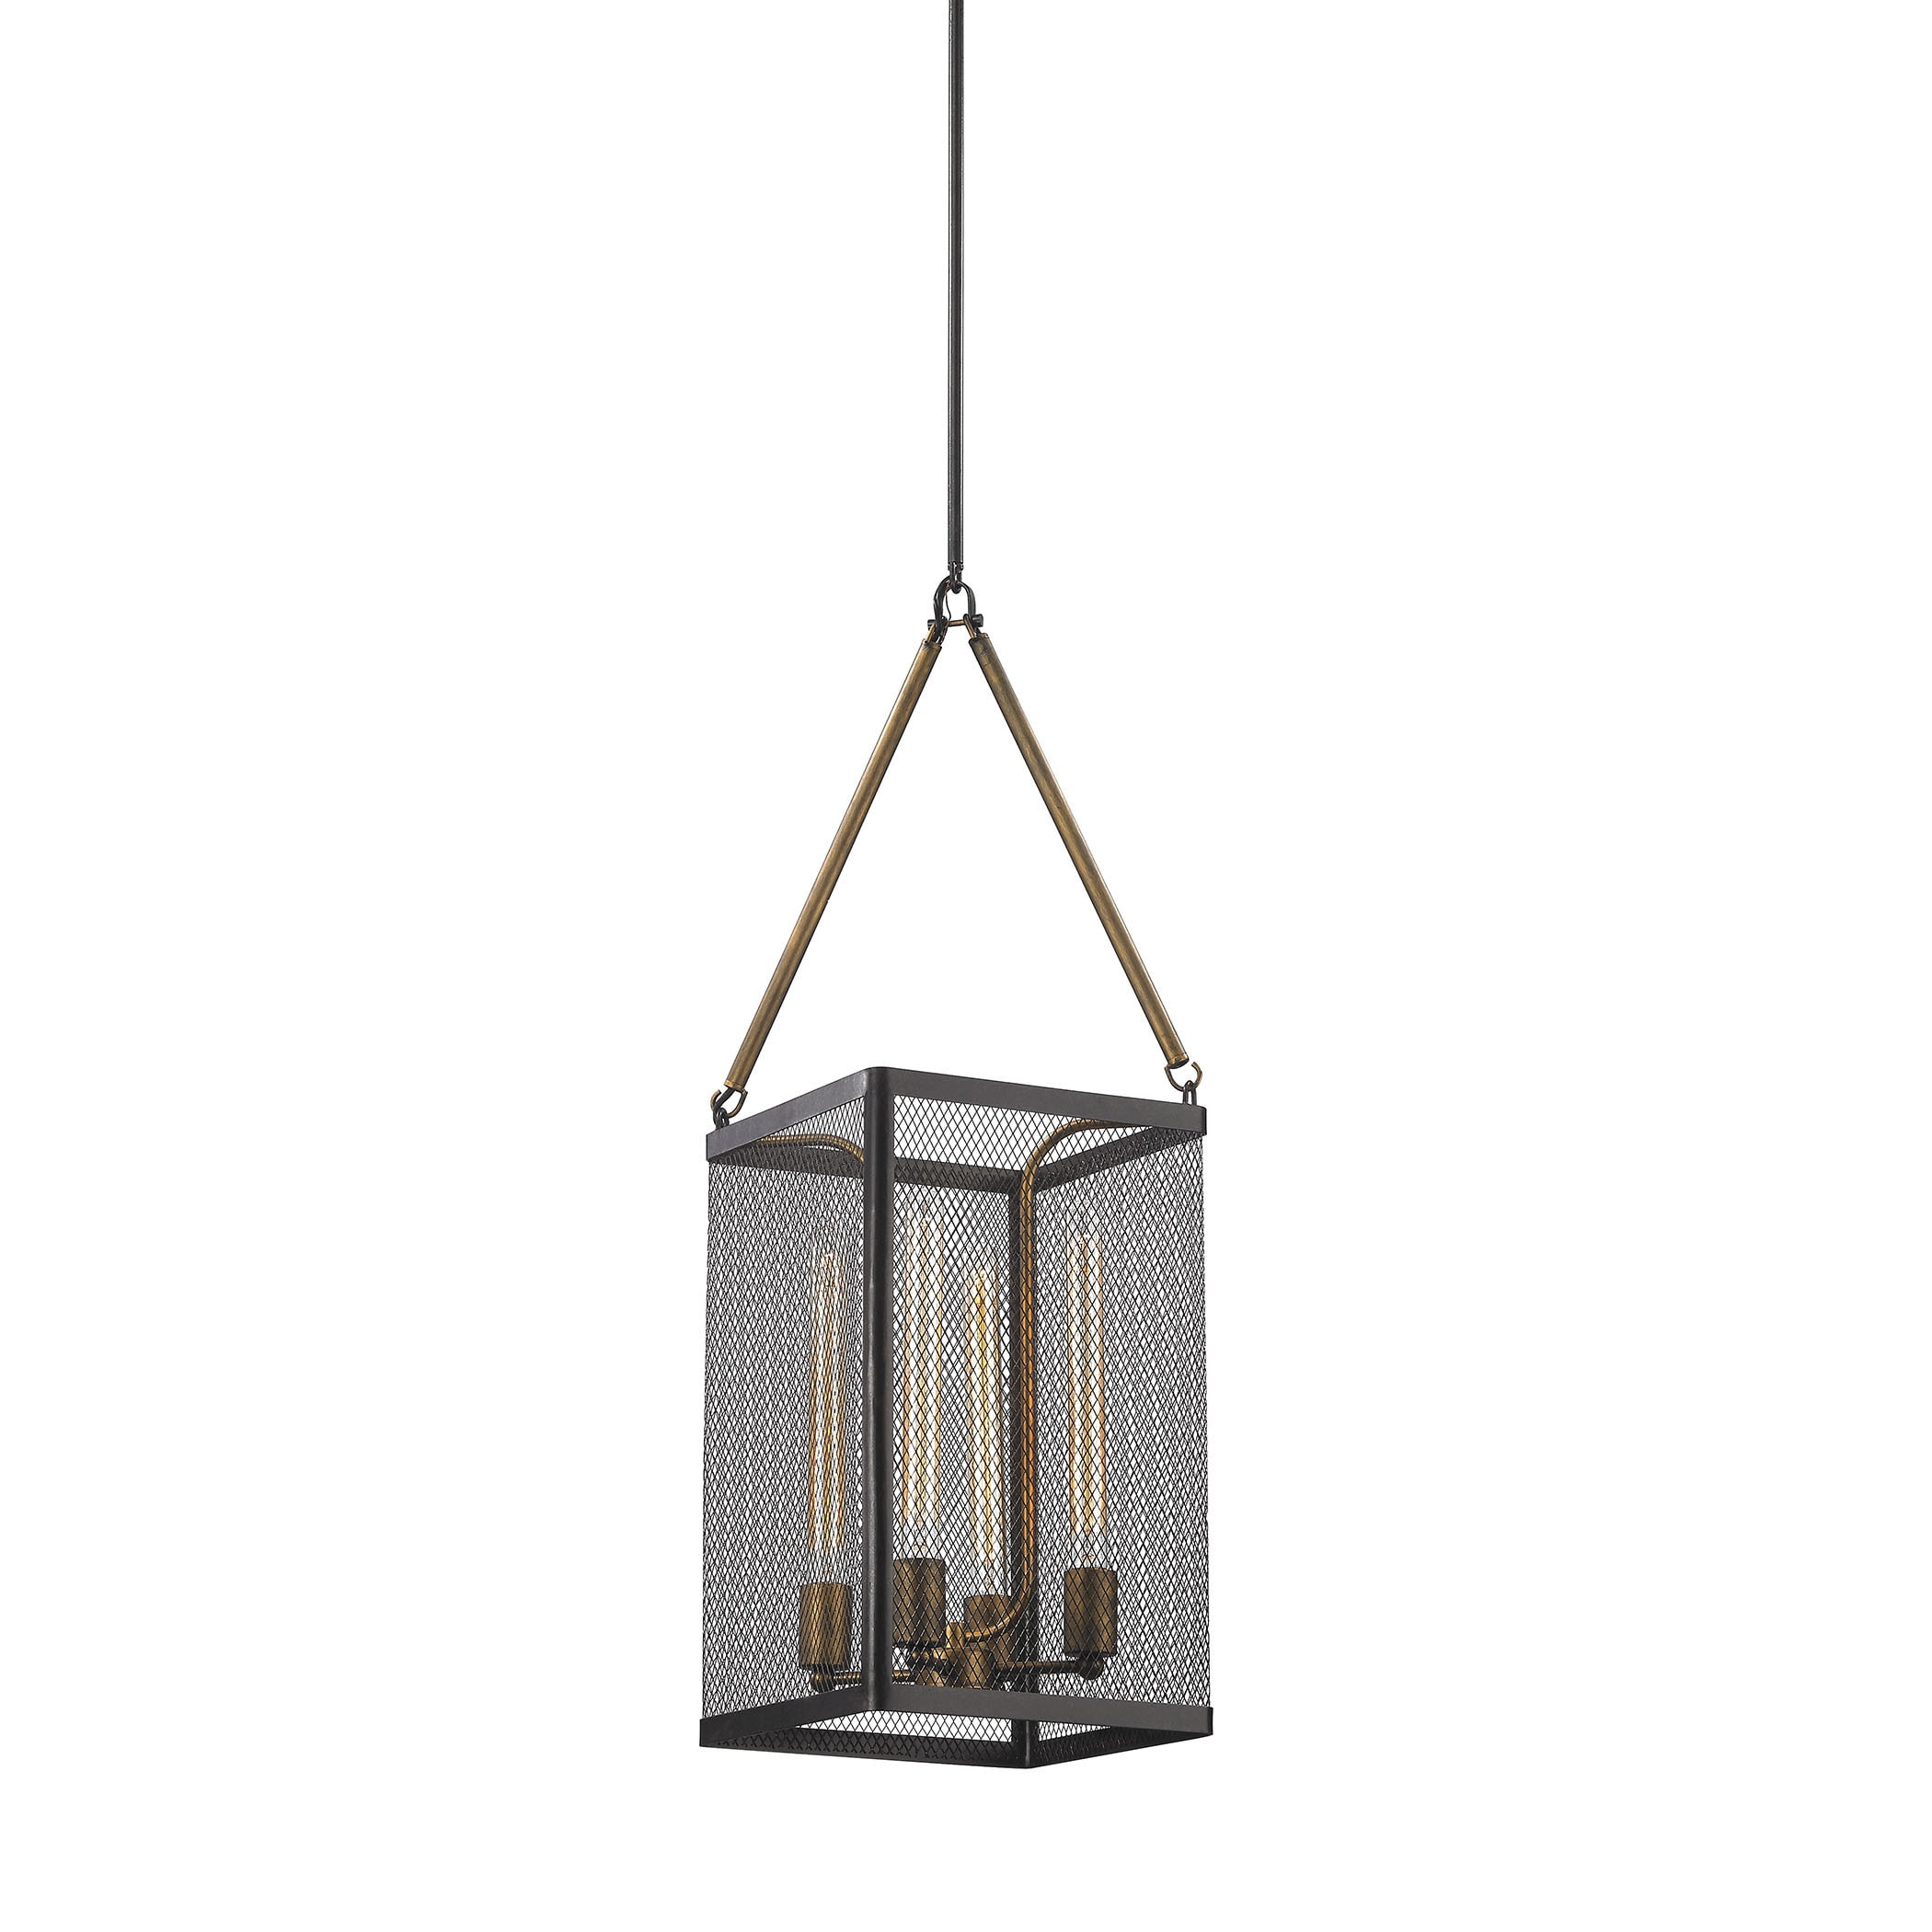 Shop Elk Donovan 4 Light Led Chandelier In Wrought Iron Black And Antique Gold On Sale Free Shipping Today Overstock 11344971